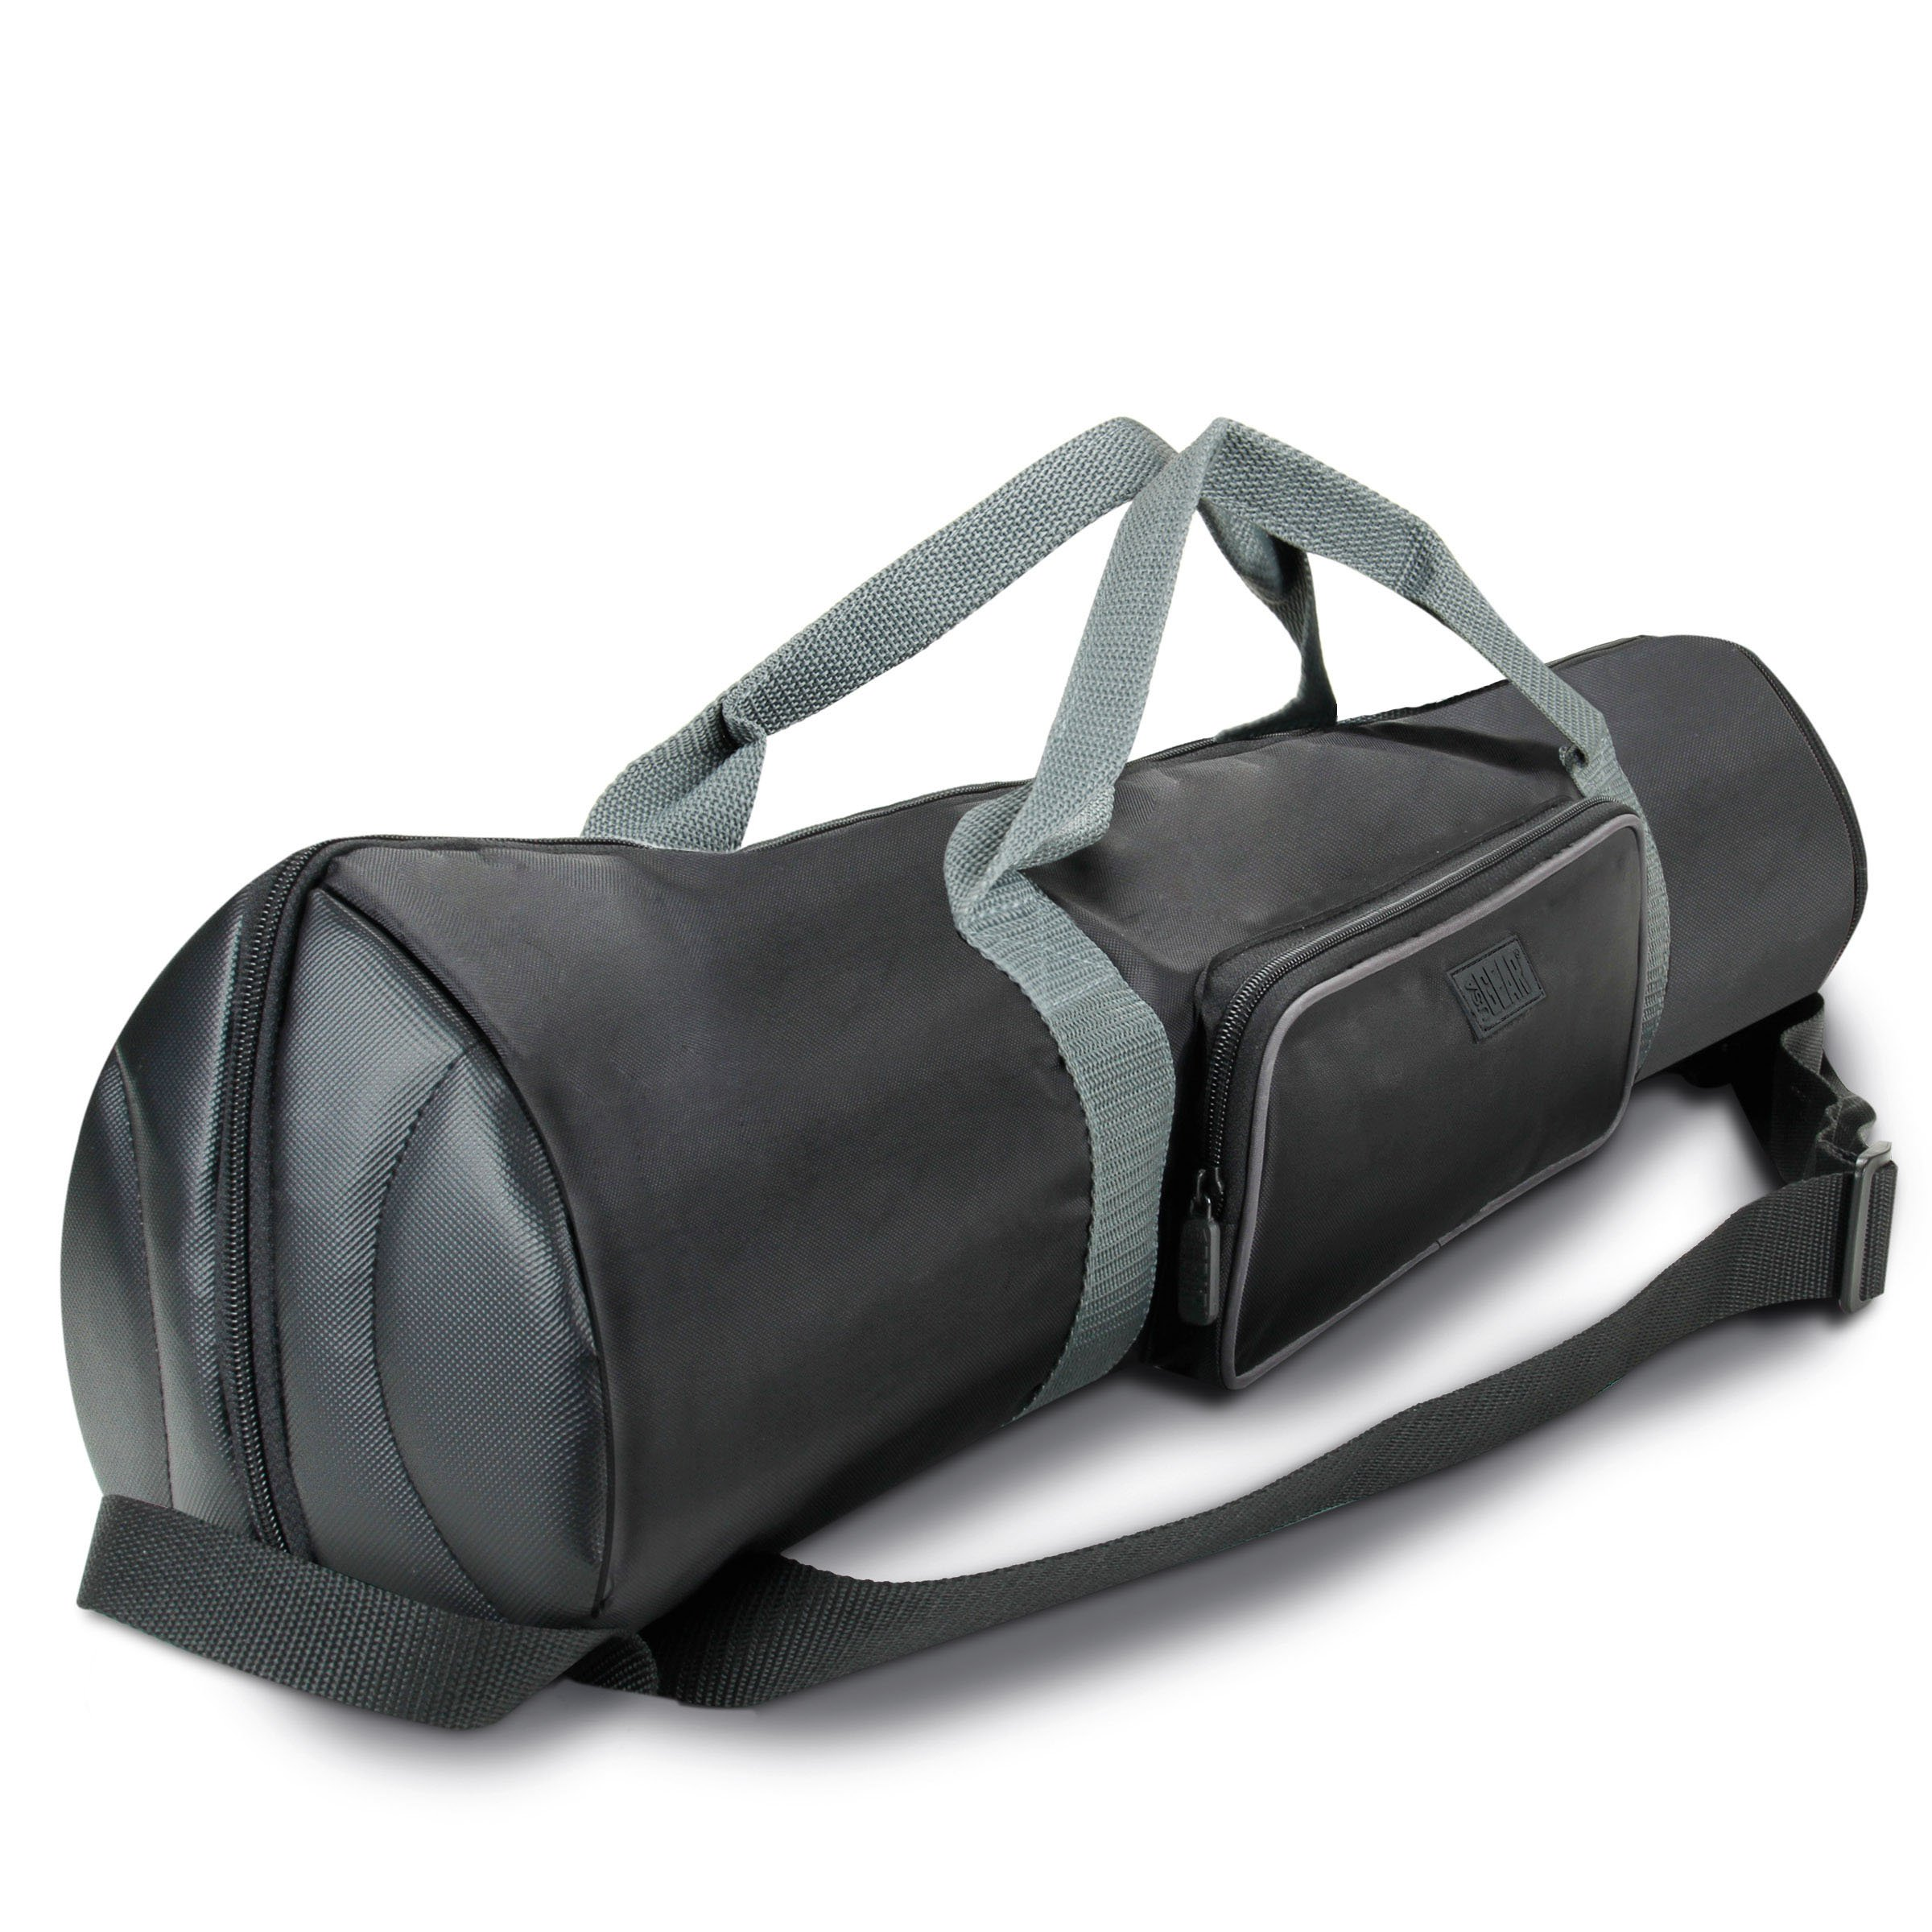 Padded Tripod Case Bag by USA Gear - Holds Tripods from 21'' to 35'' Folded with Shoulder Strap, Adjustable Size Extension and Storage Pocket for Professional Camera Accessories and Photo Carrying Needs